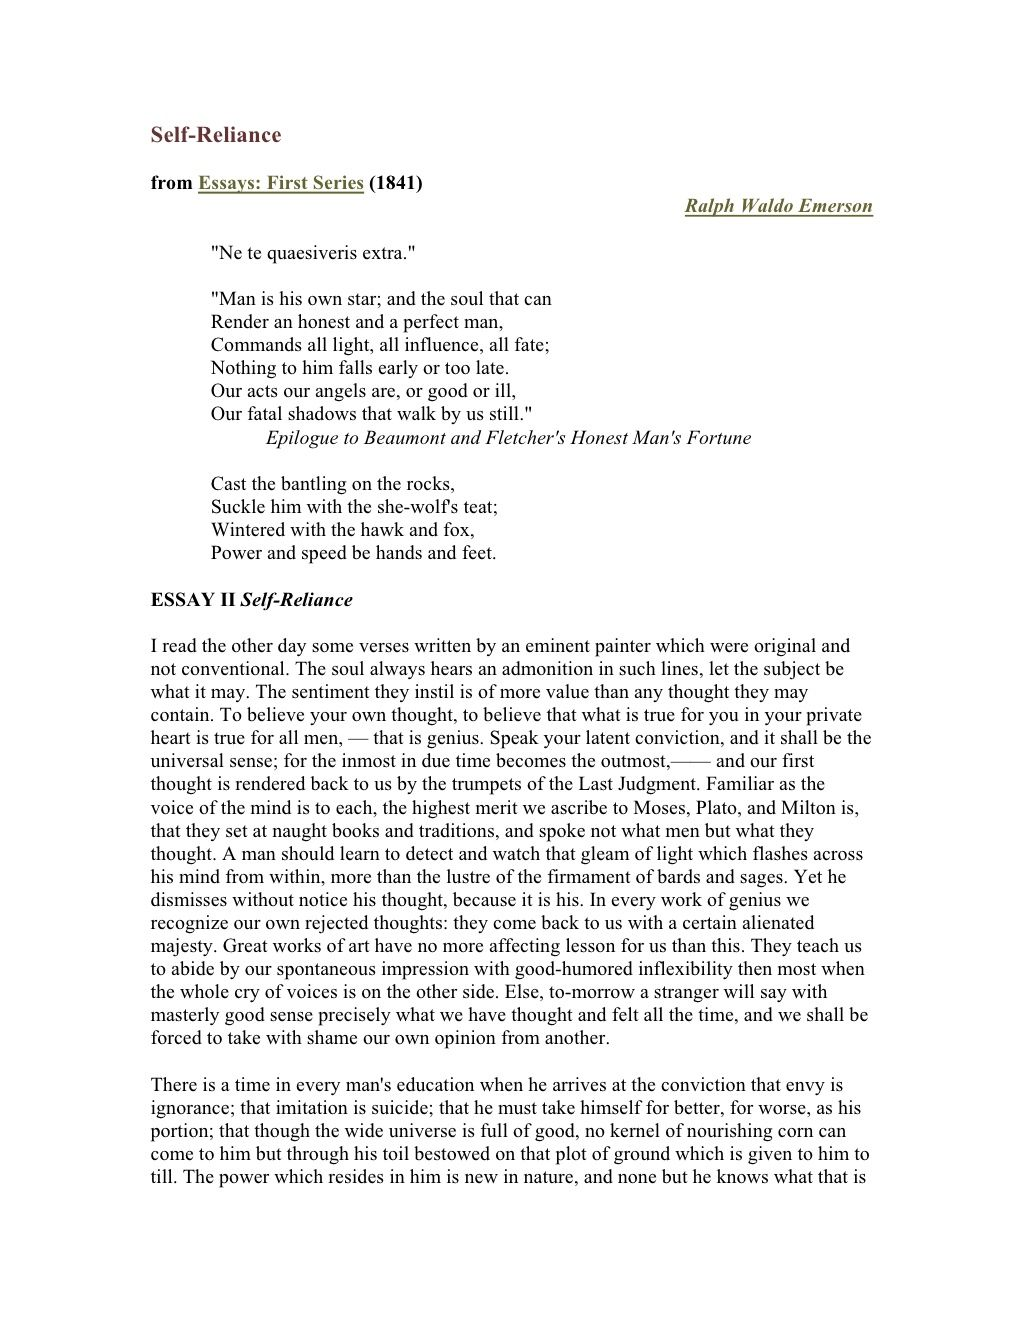 Essay about my family history